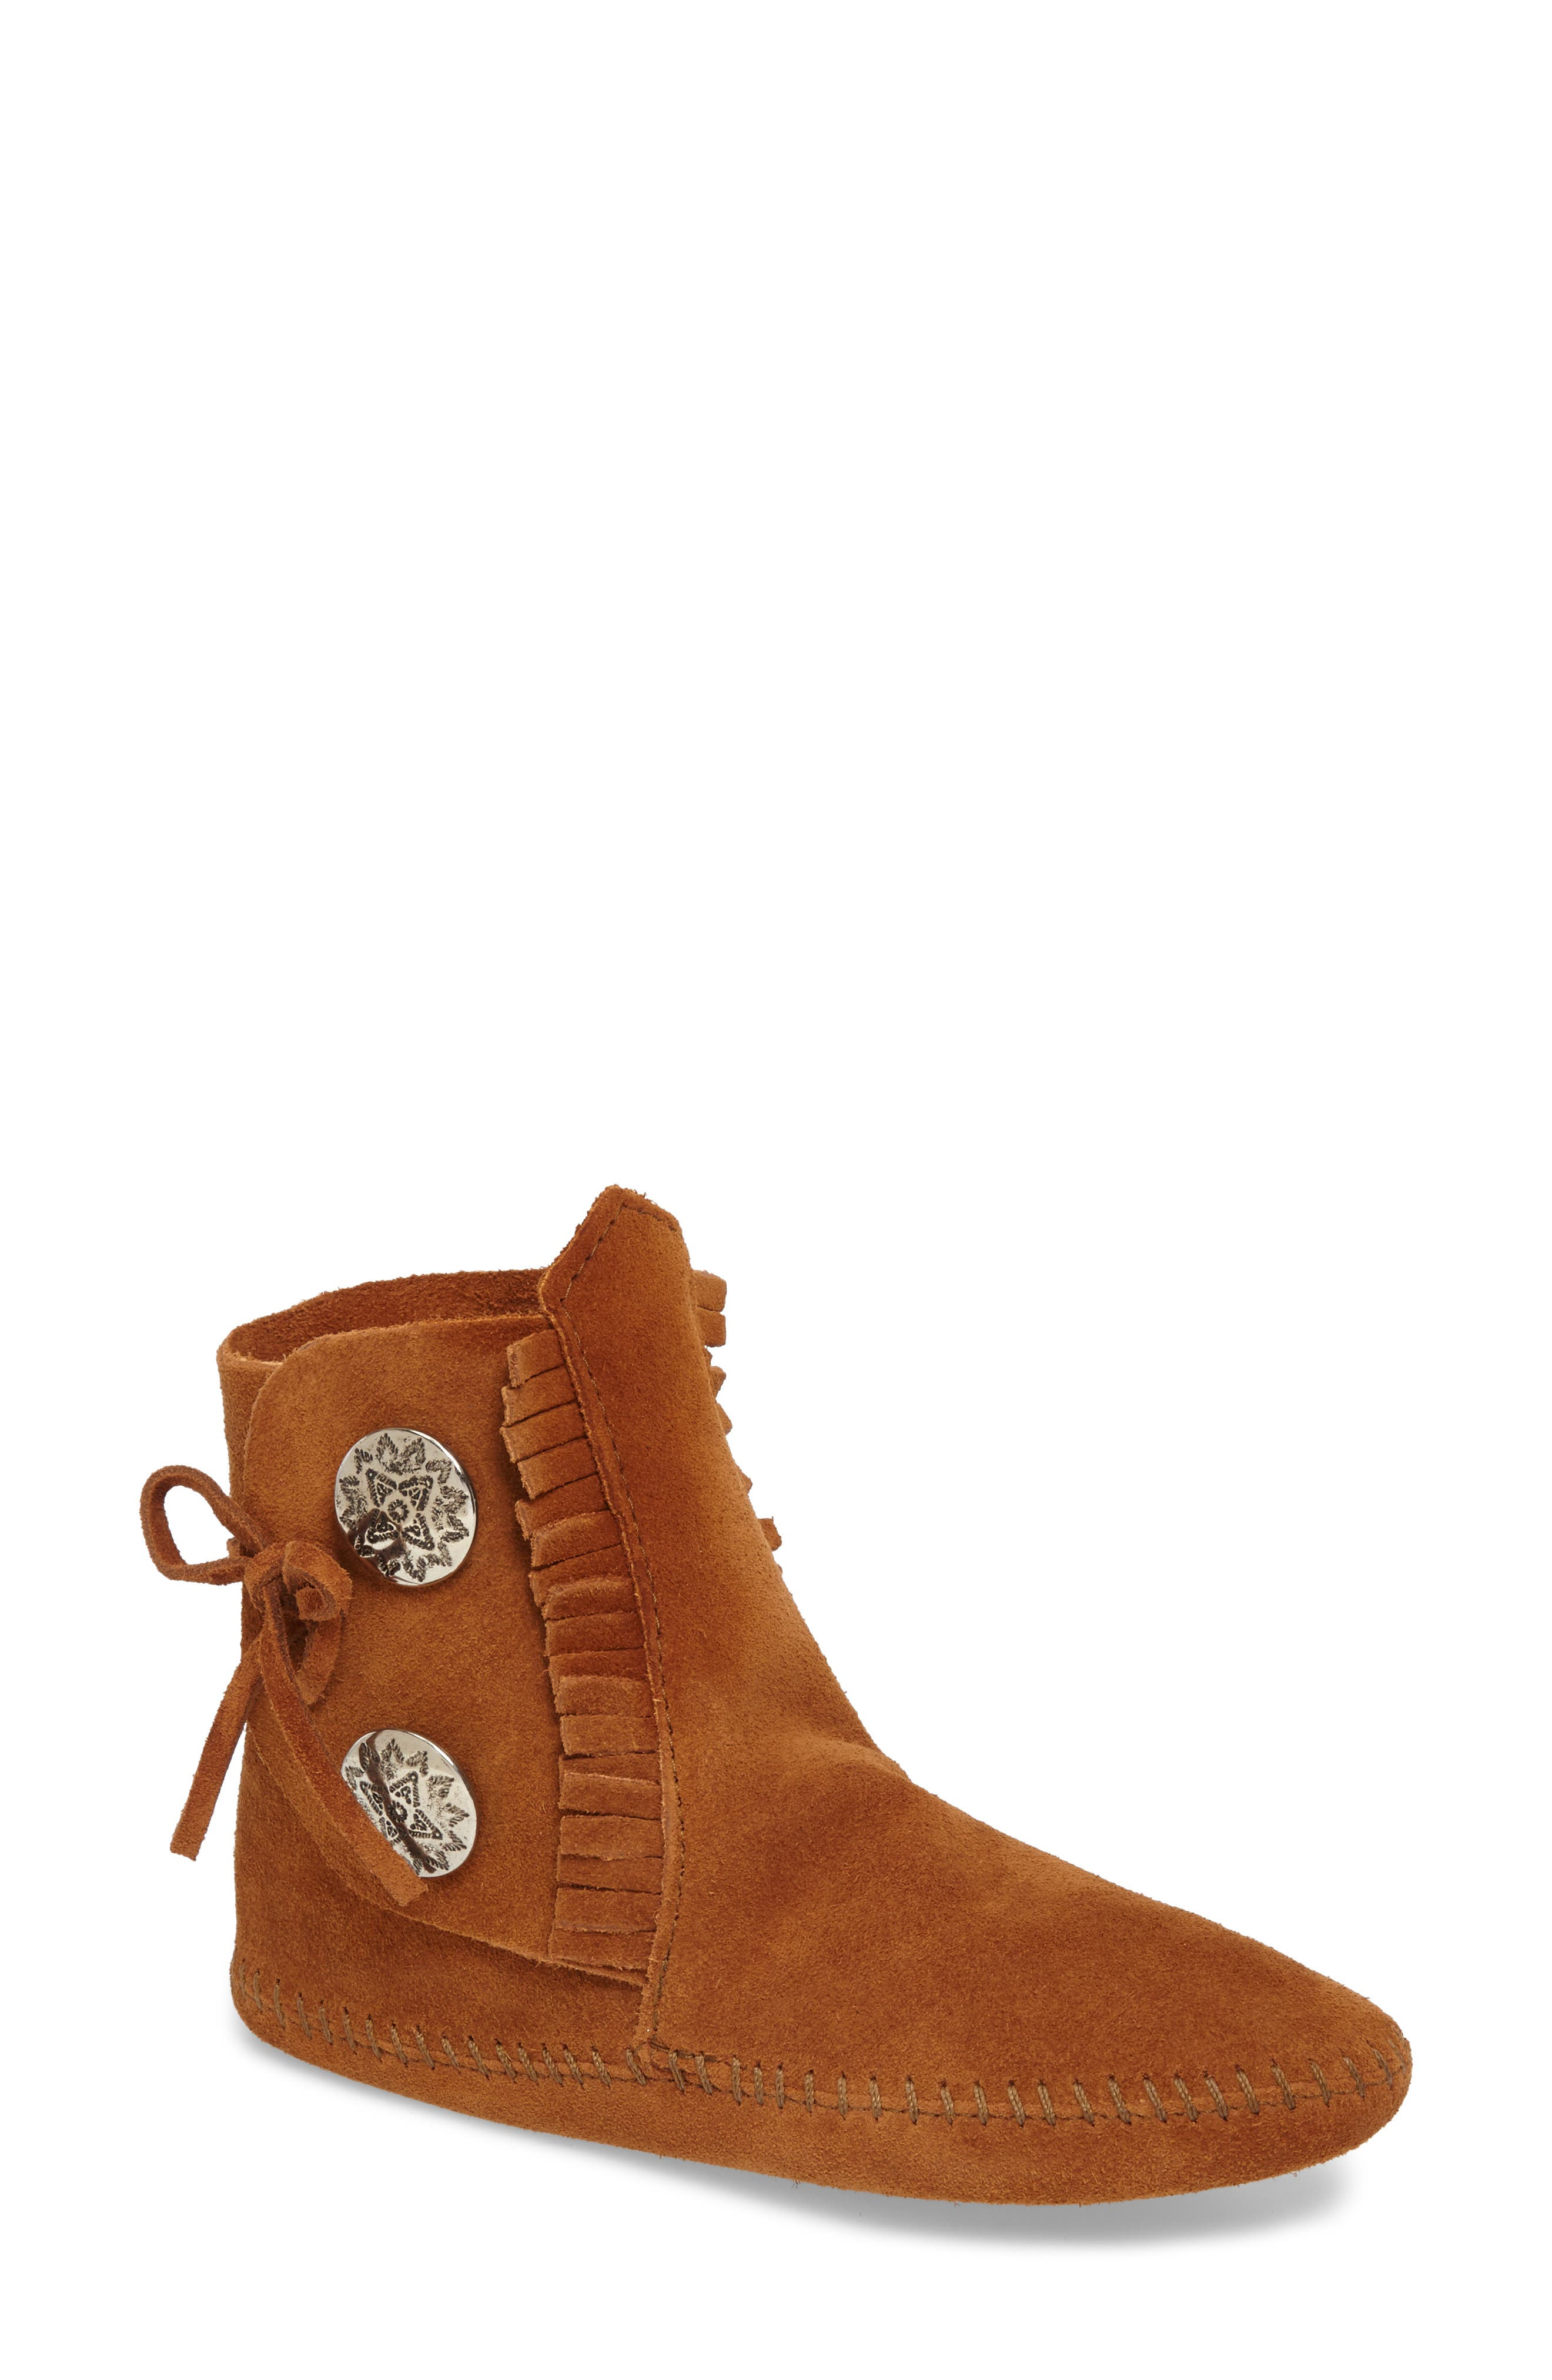 Two-Button Softsole Bootie,                             Main thumbnail 1, color,                             Brown